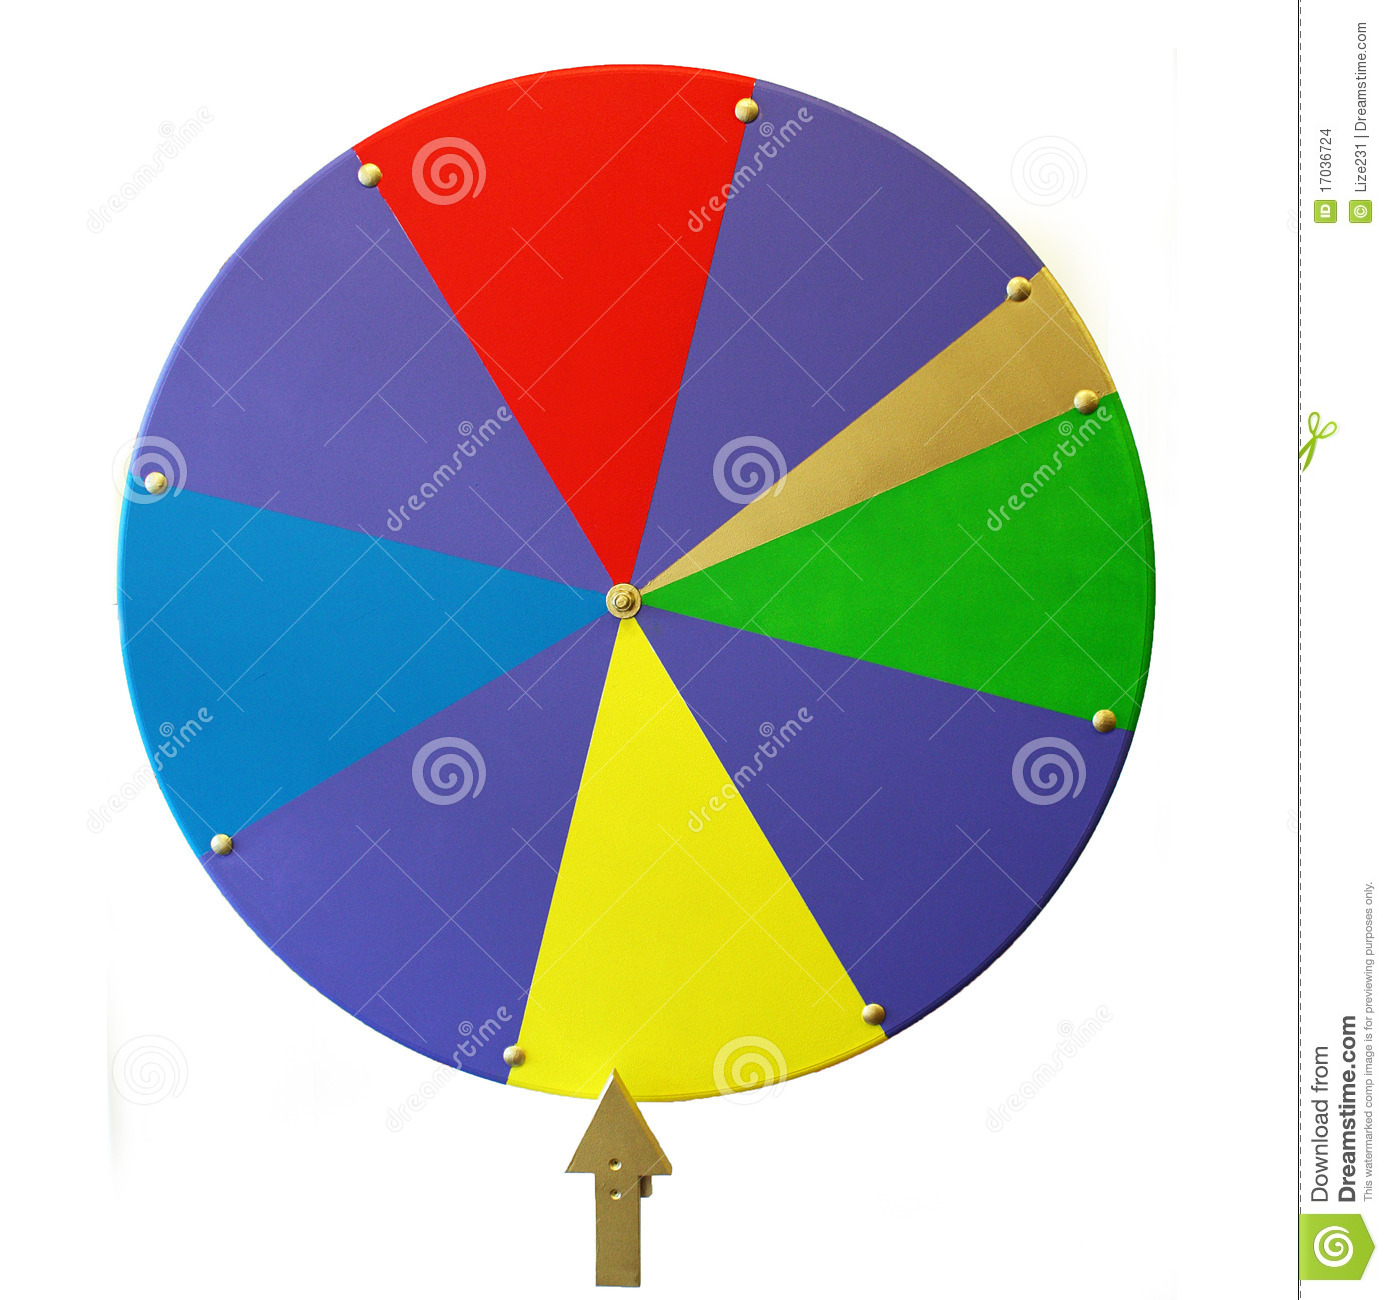 wheel of fortune stock photo. image of gamble, entertainment, Powerpoint templates